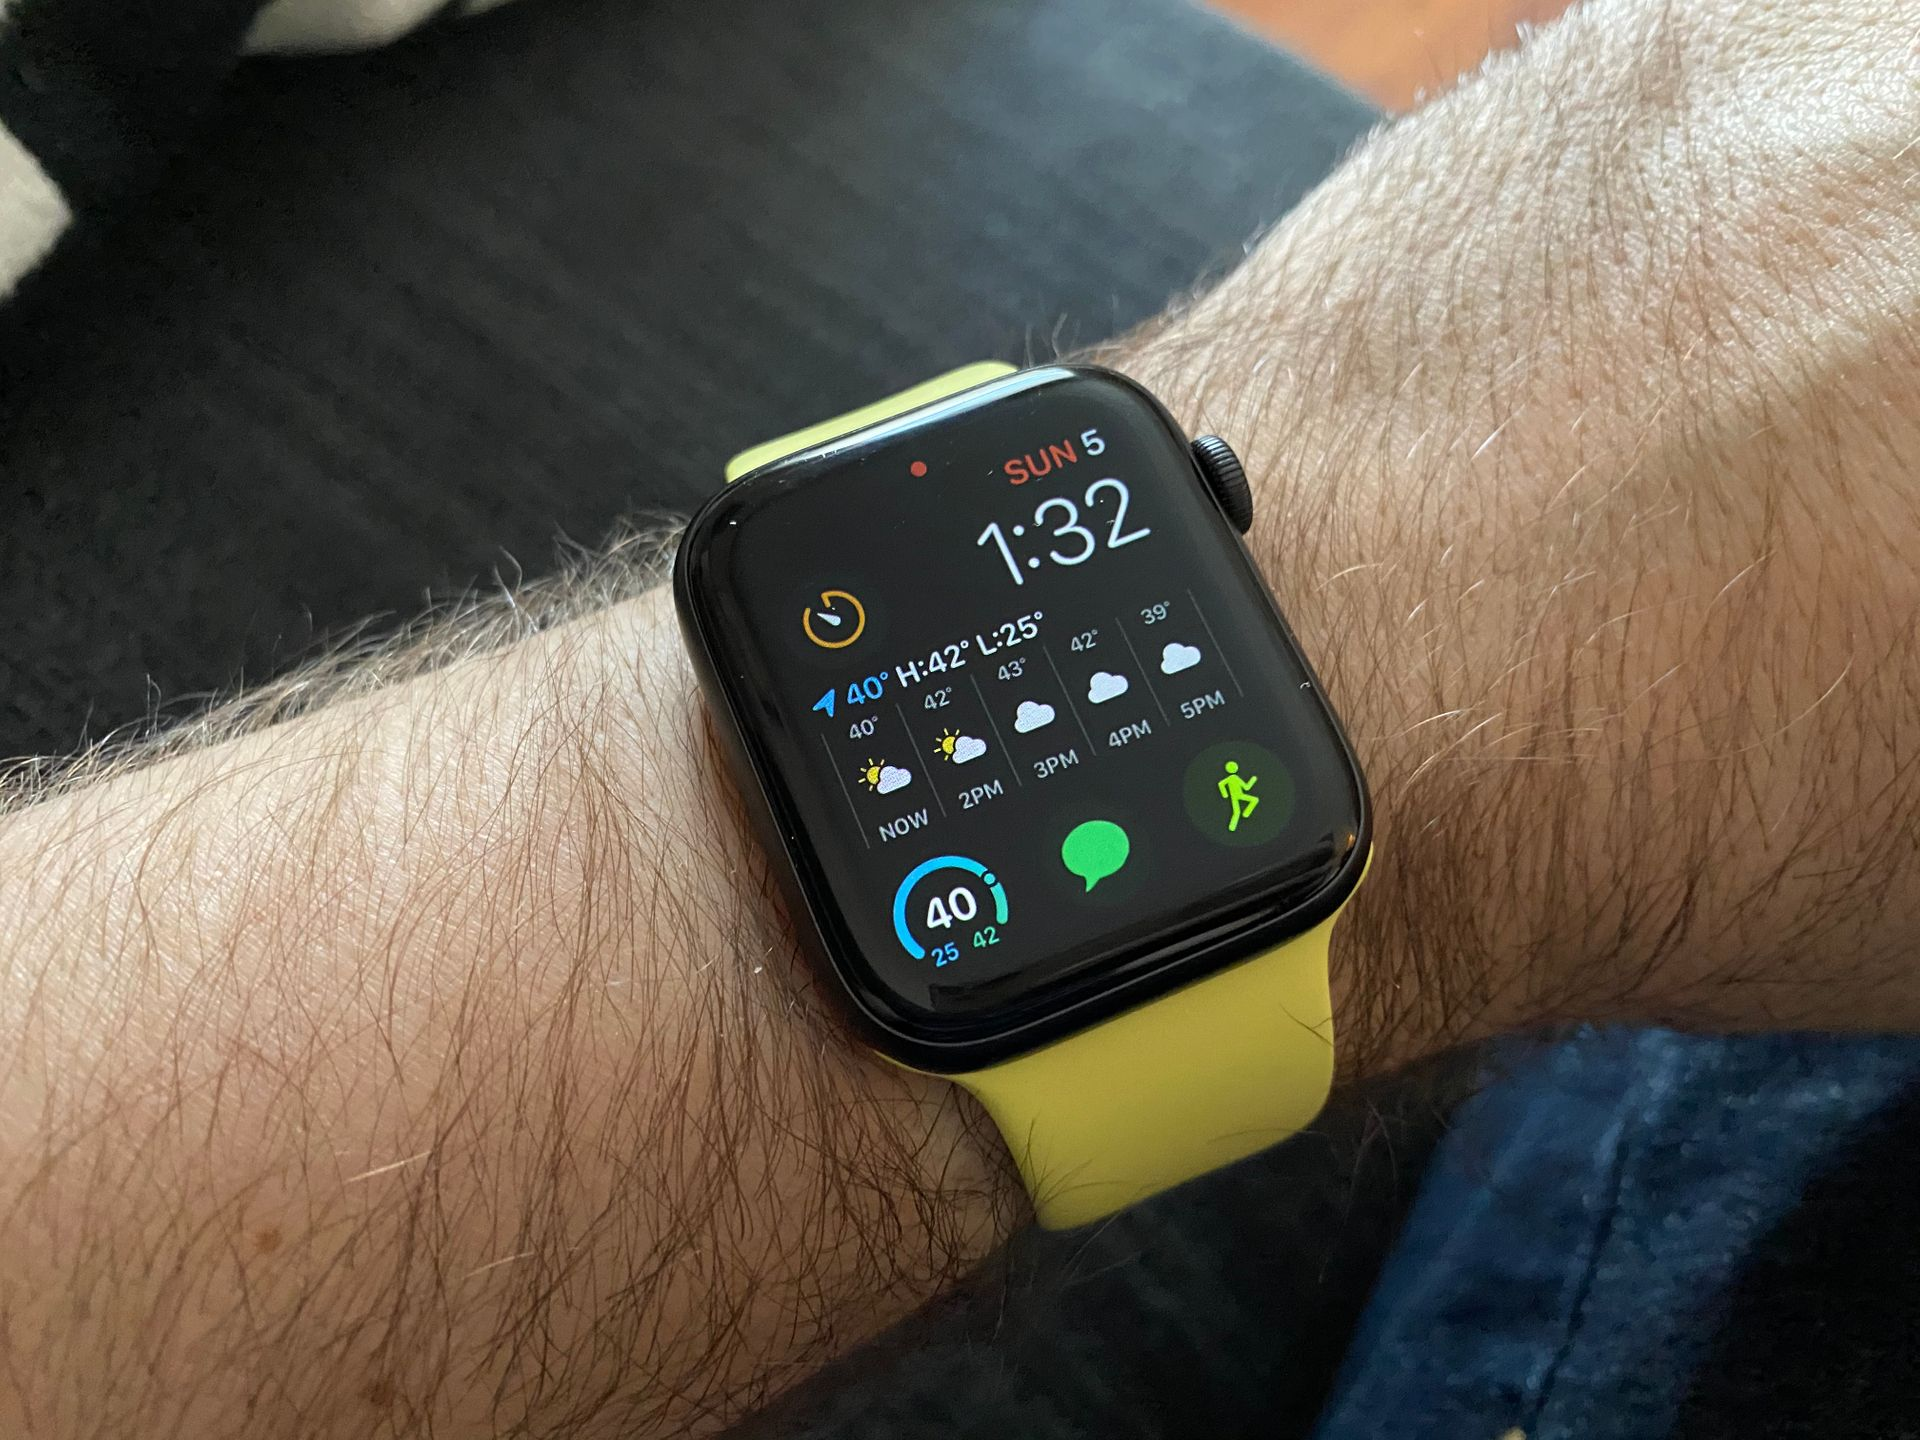 How Does the Apple Watch Avoid Screen Burn In?